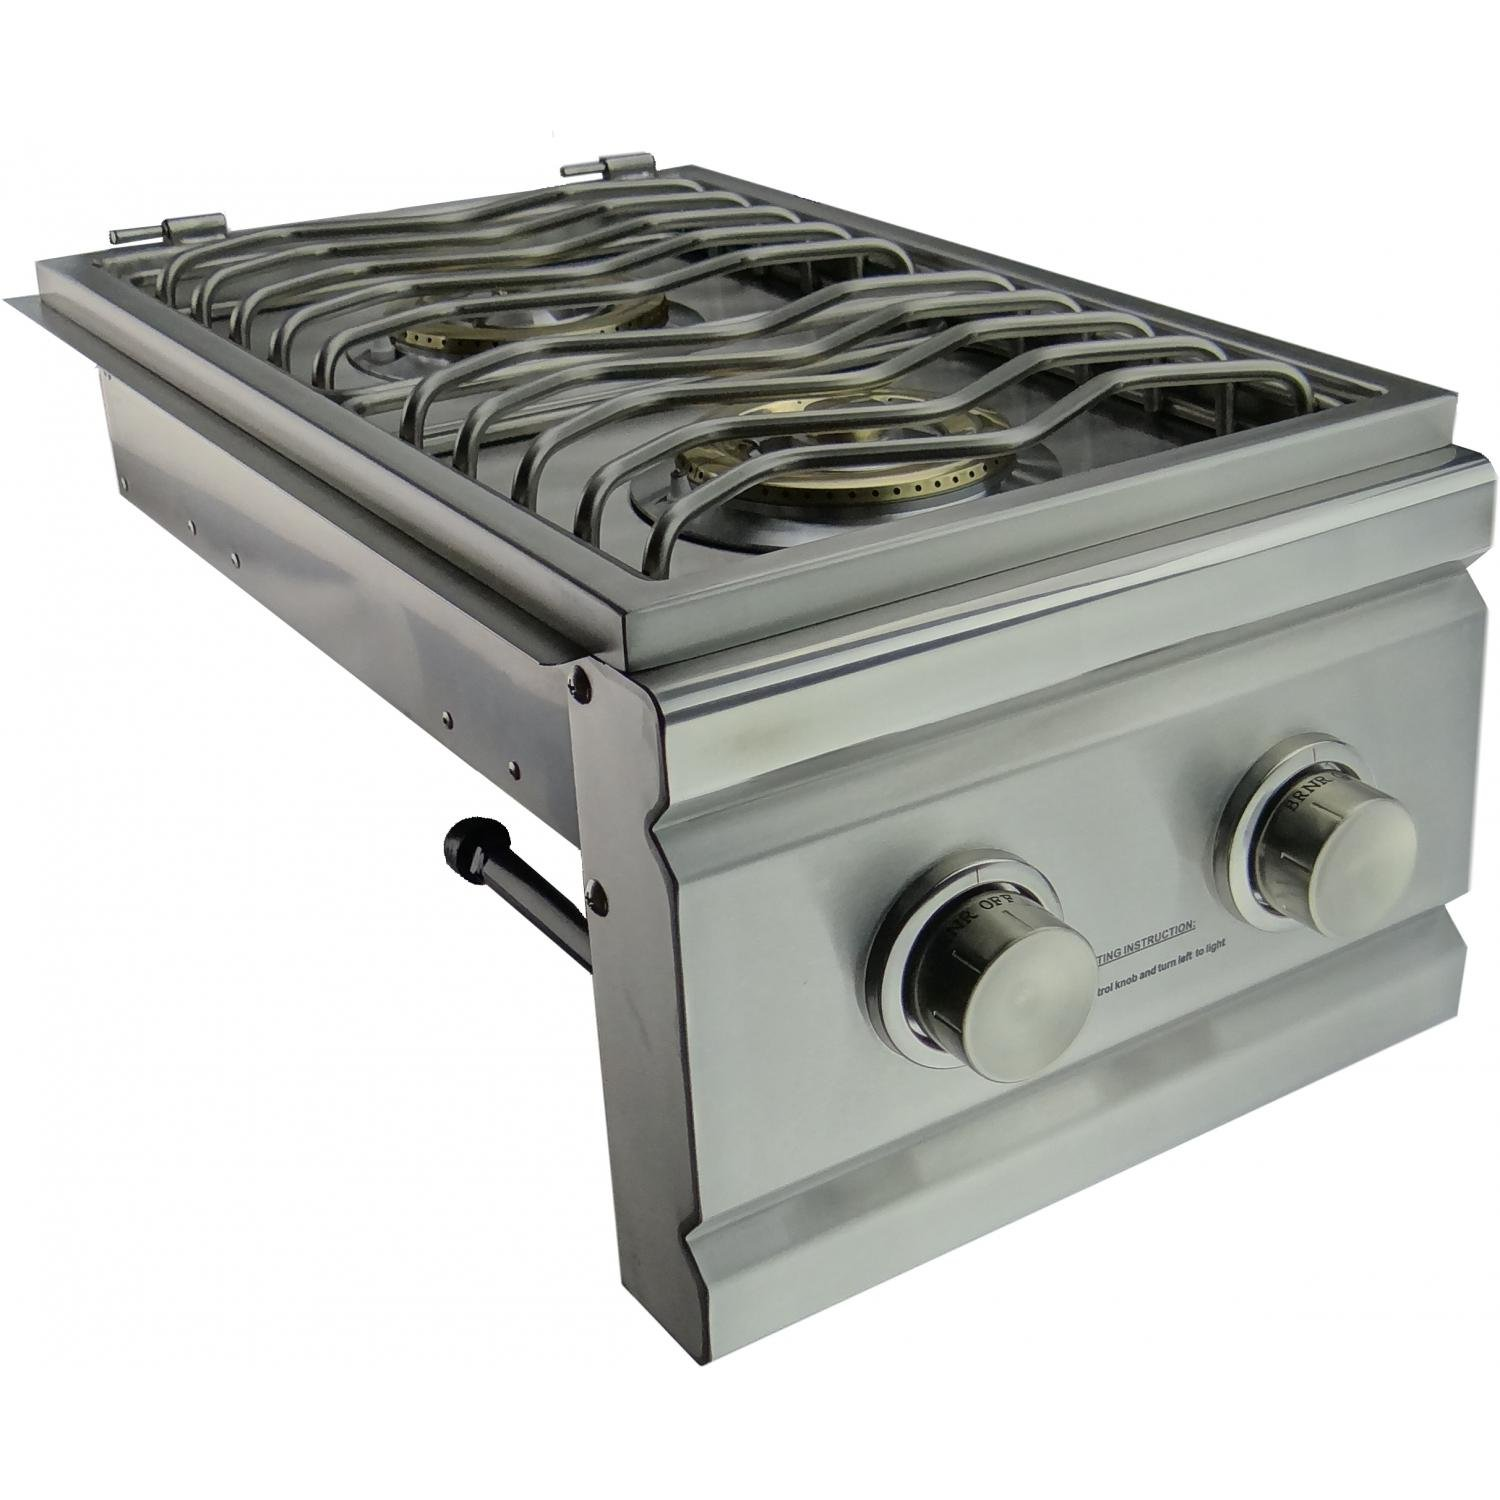 RDB1LP Stainless Steel Double Side Burner Up to 24000 BTUs Liquid Propane